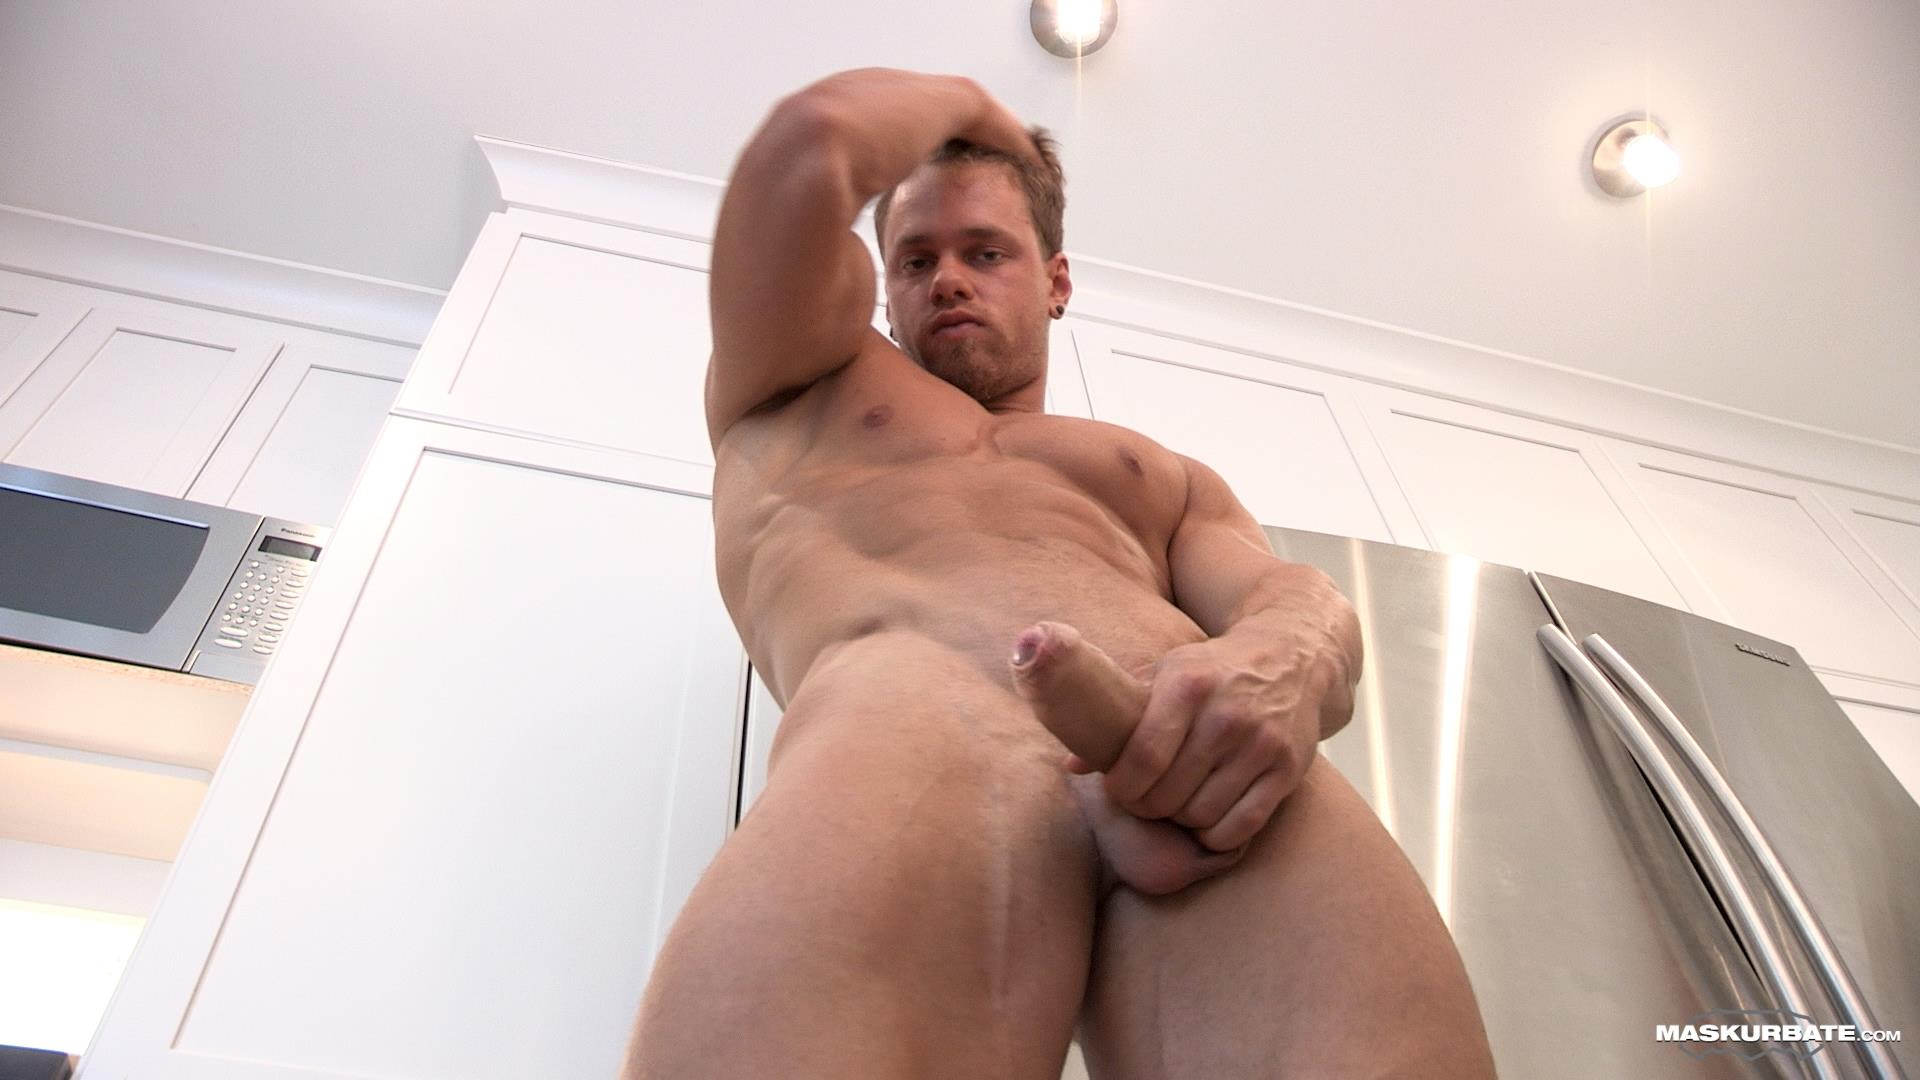 Maskurbate-Muscular-Guy-With-A-Big-Uncut-Cock-Jerking-Off-10 Jerking Off My Big Uncut Cock Into My Friends Wine Glass On New Years Eve